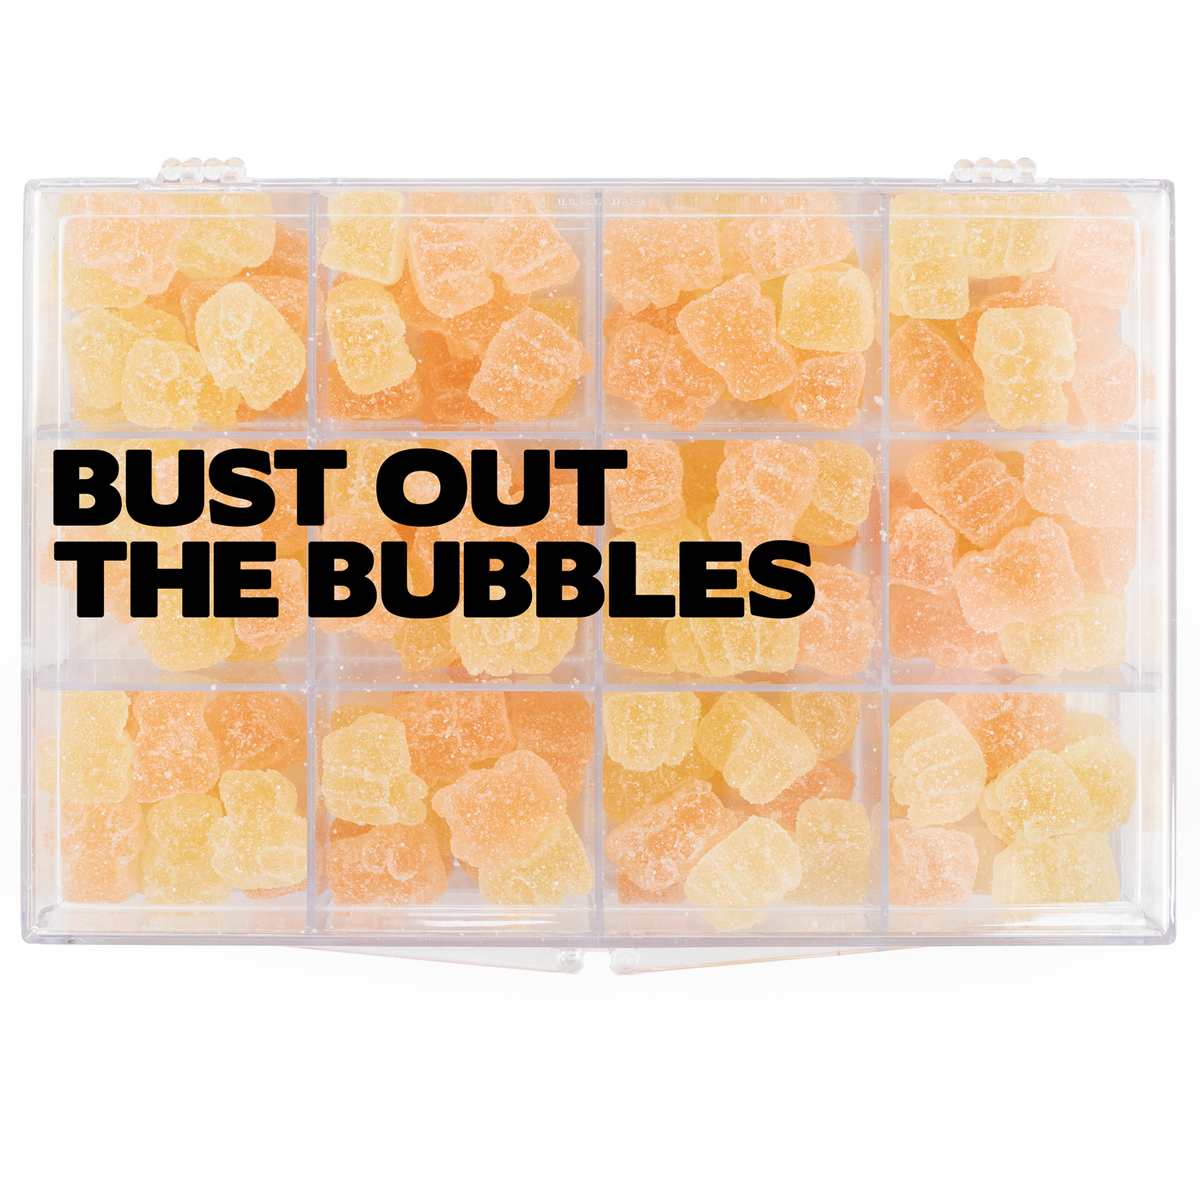 Bust out the Bubbles Snackle Box